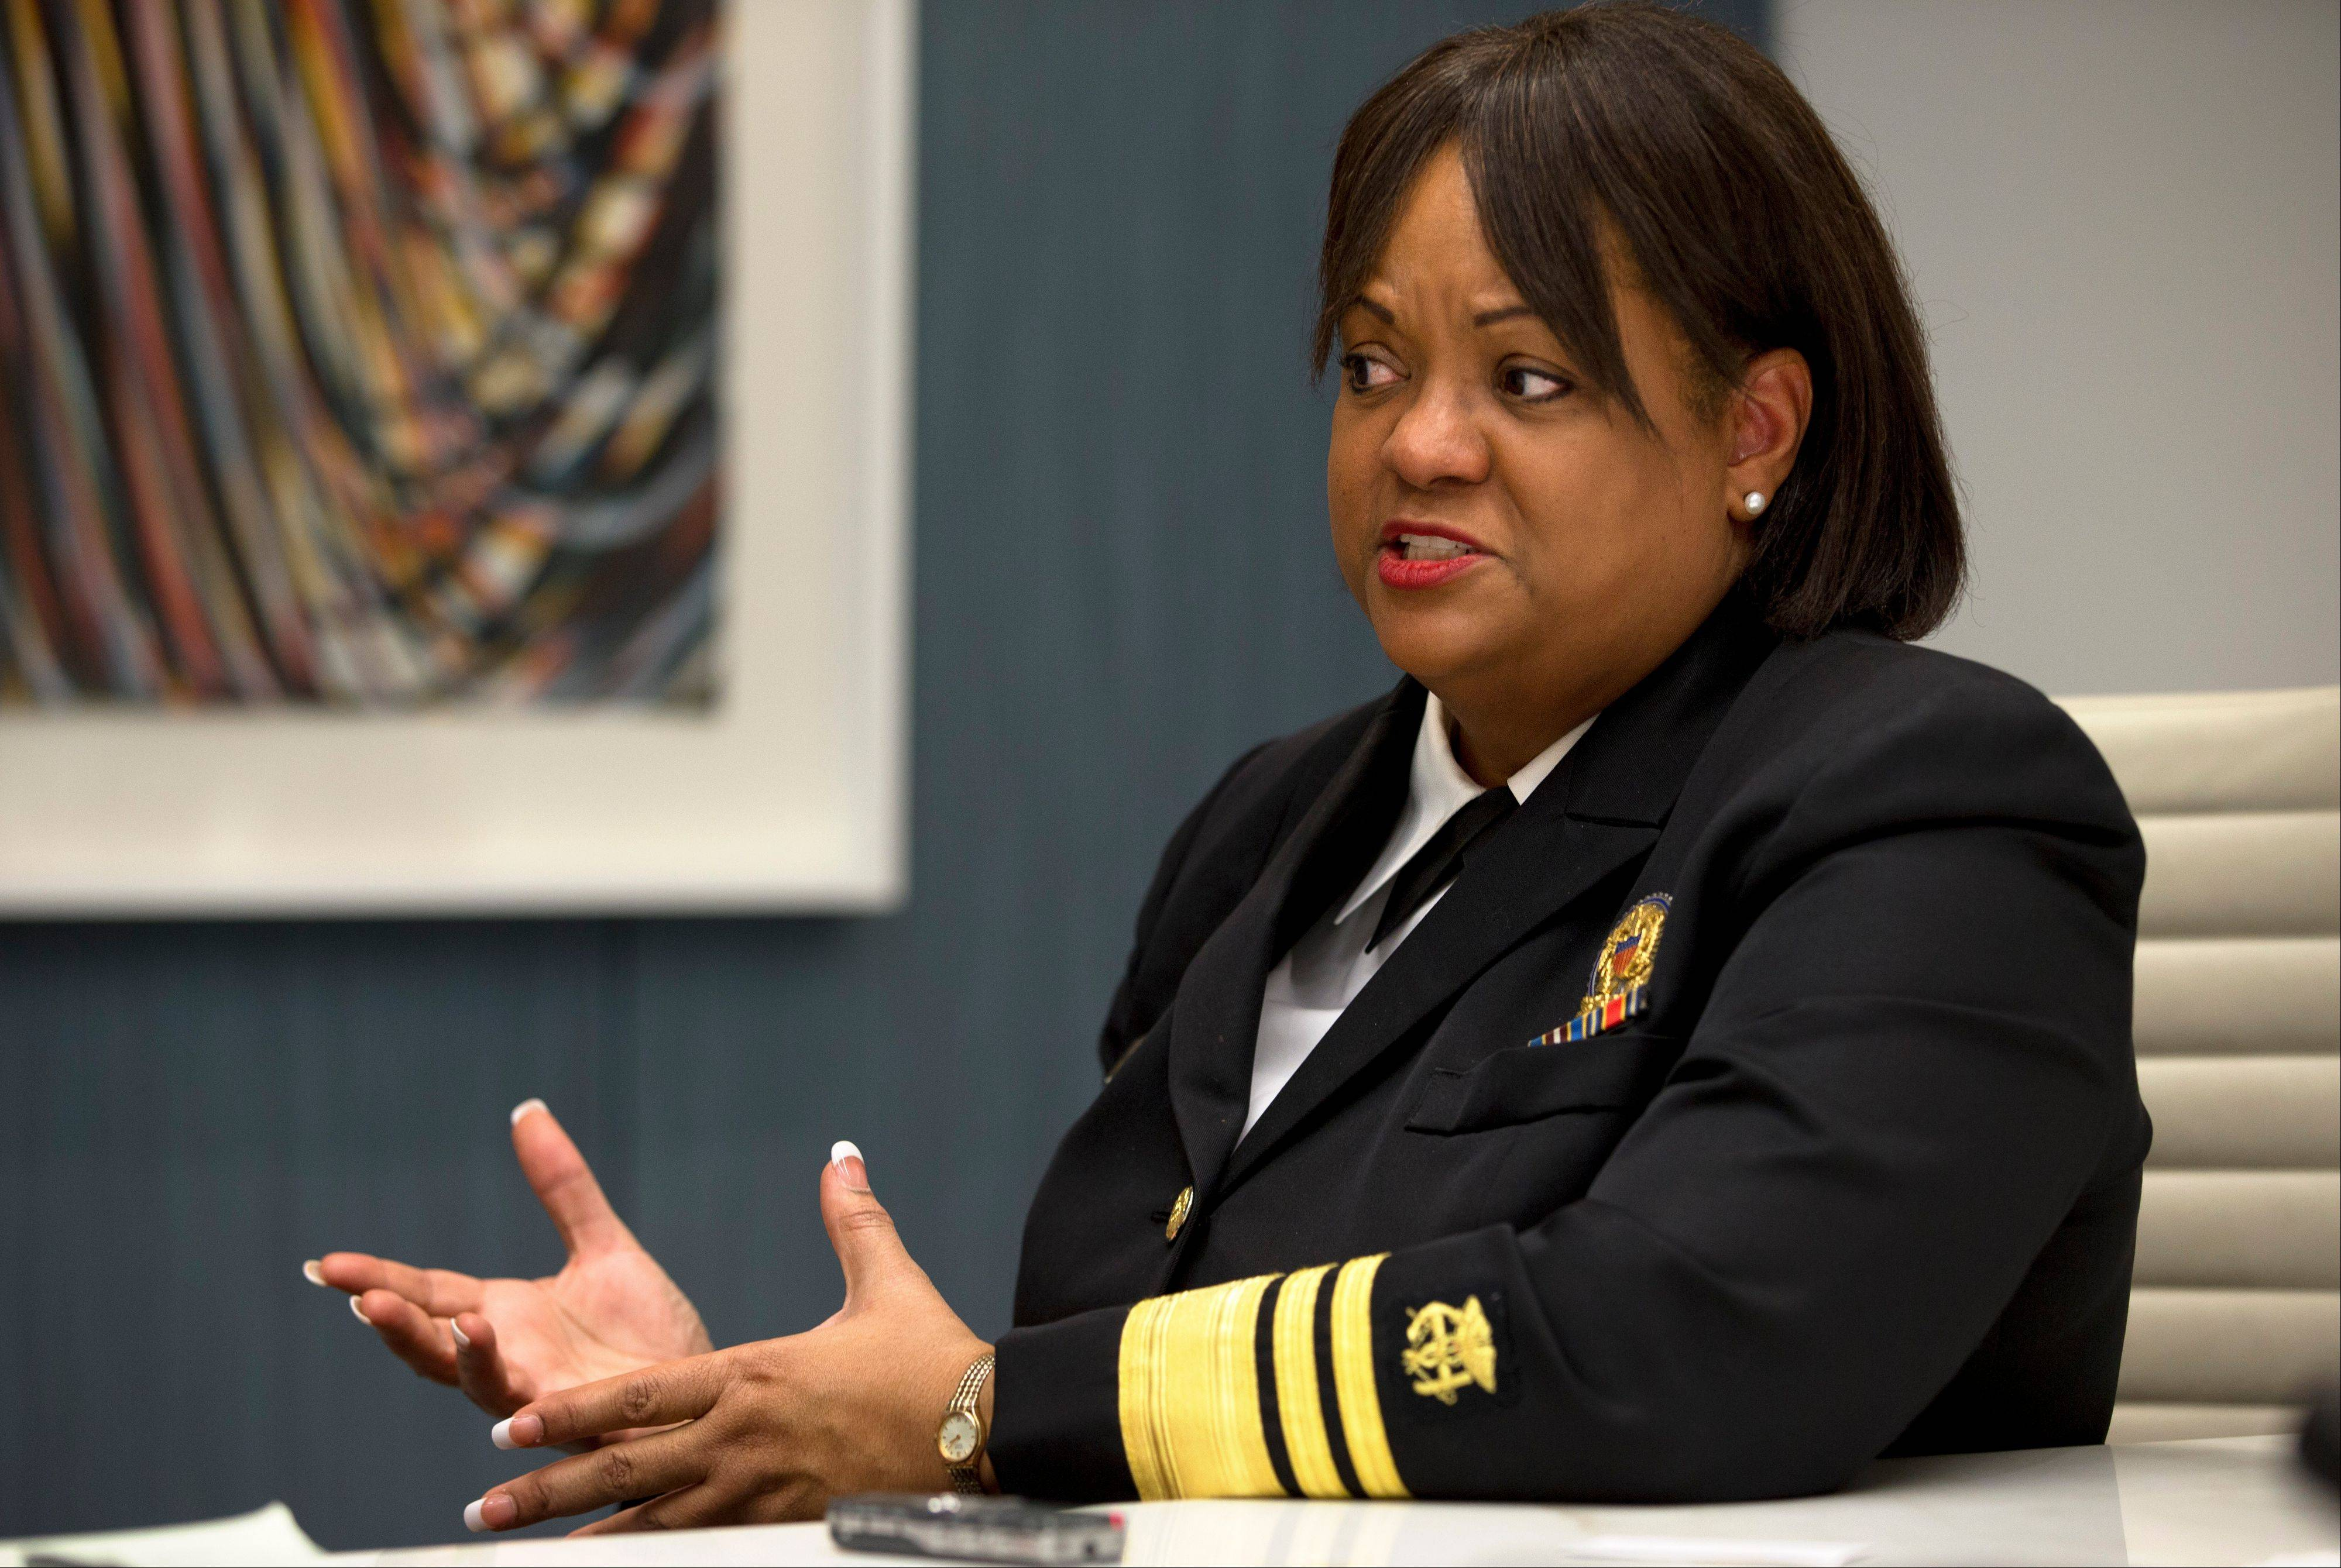 Associated Press Regina Benjamin, Surgeon General of the United States, is interviewed Wednesday after speaking about health disparities in Washington. African-American women have the highest rate of obesity of any group of Americans. Four out of five black women have a body mass index above 25 percent, the threshold for being overweight or obese, according to the Centers for Disease Control and Prevention.